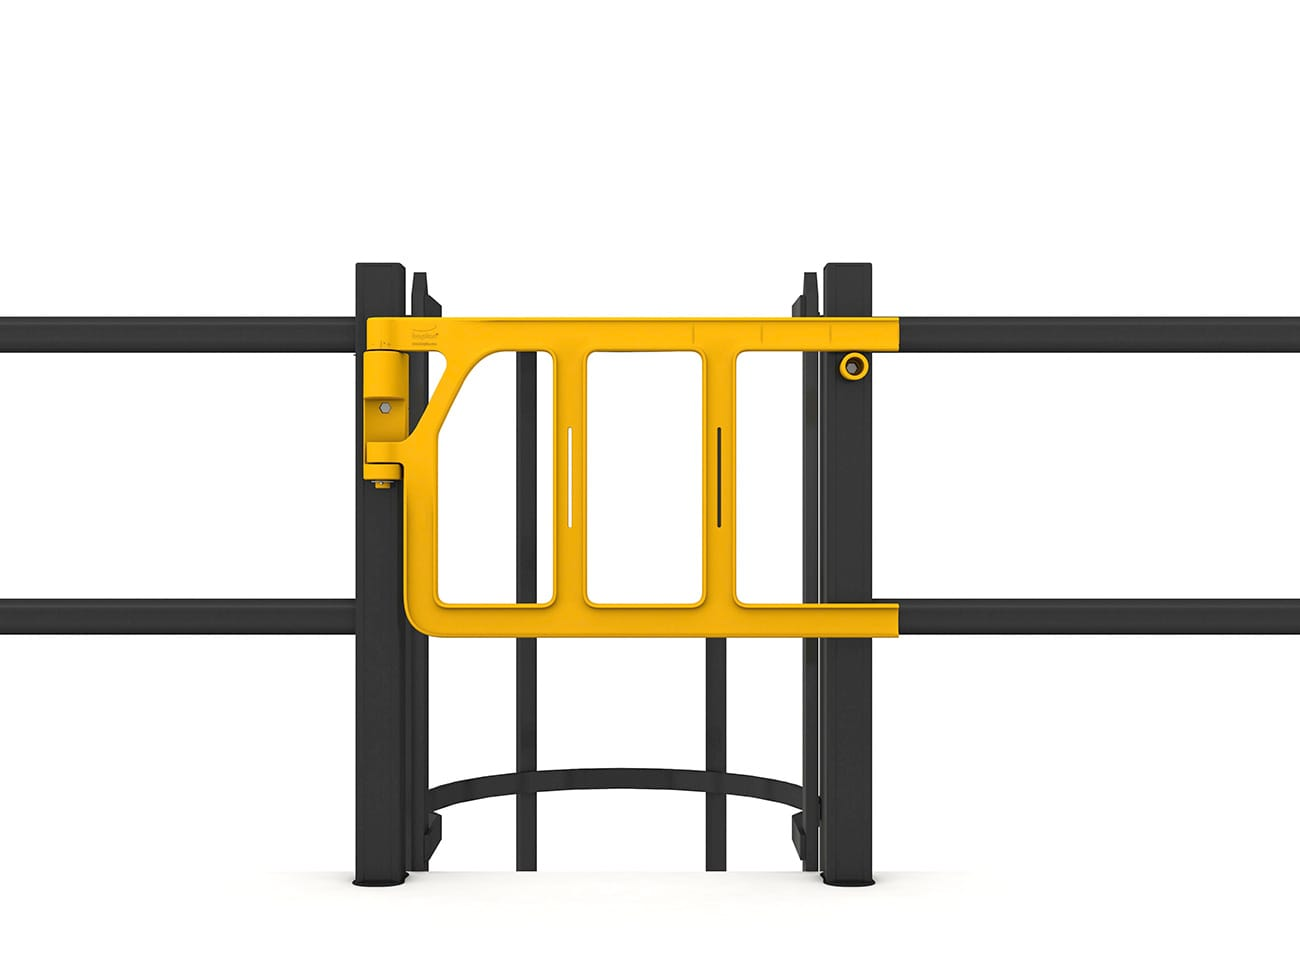 Doubel Axes Gate ladder cage